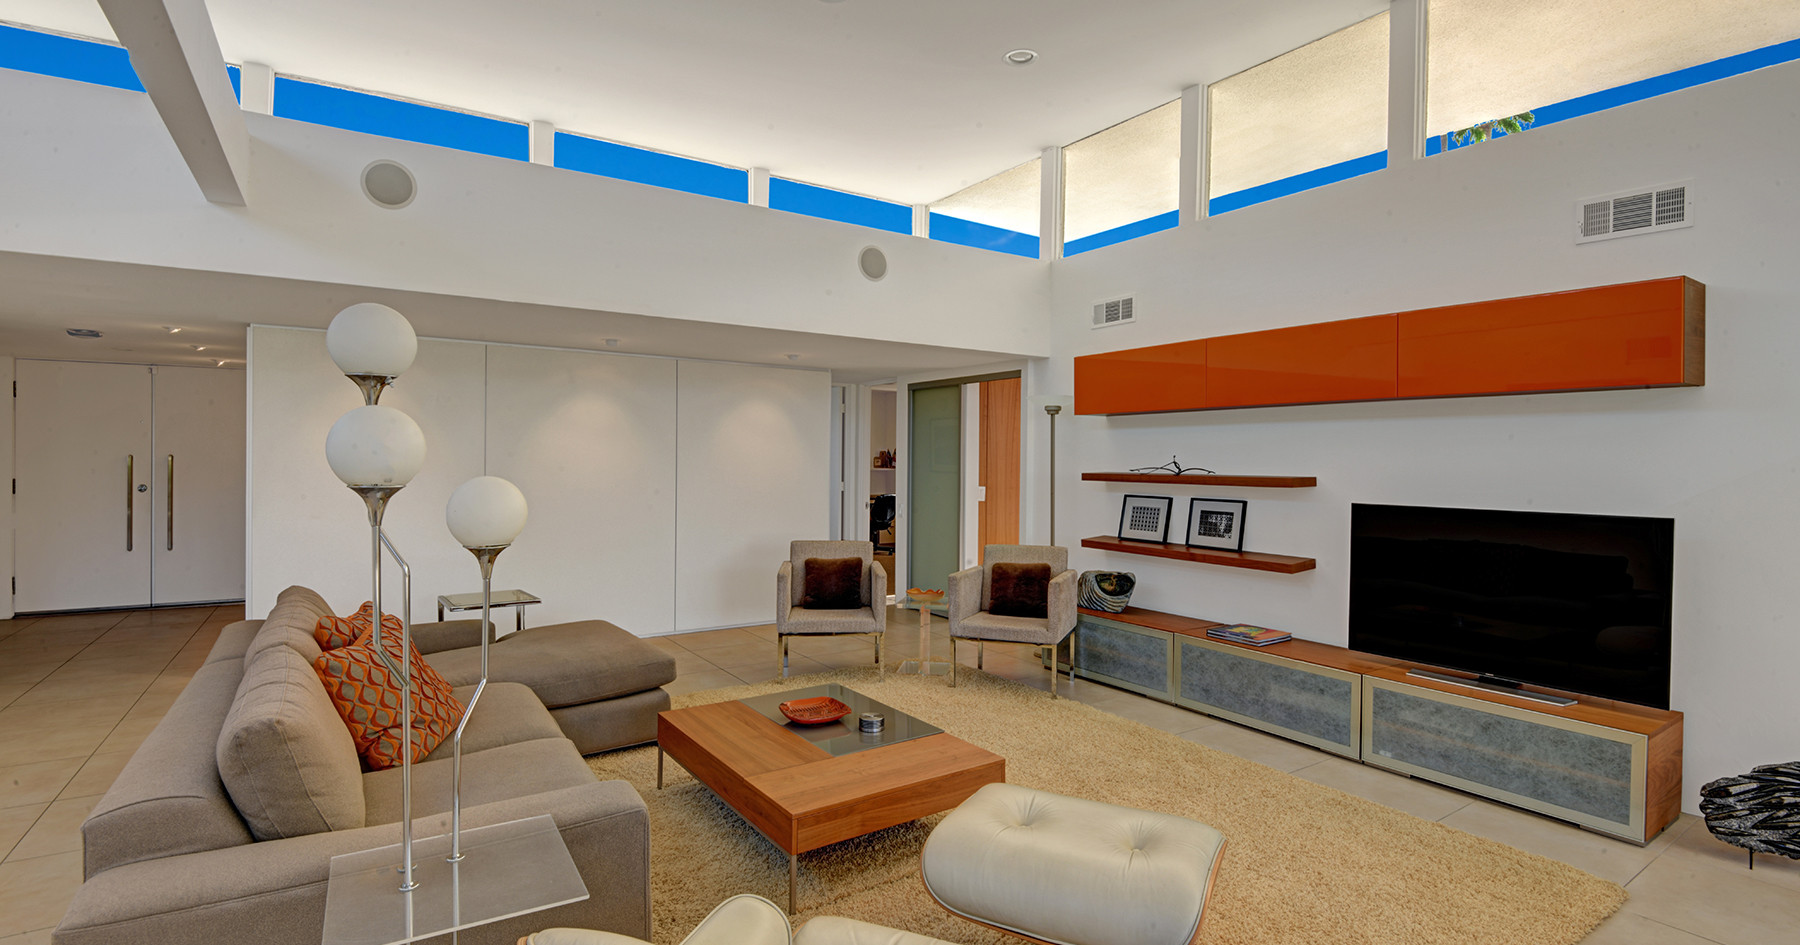 LIVING ROOM ANGLED ARCHITECTURE MLS.jpg